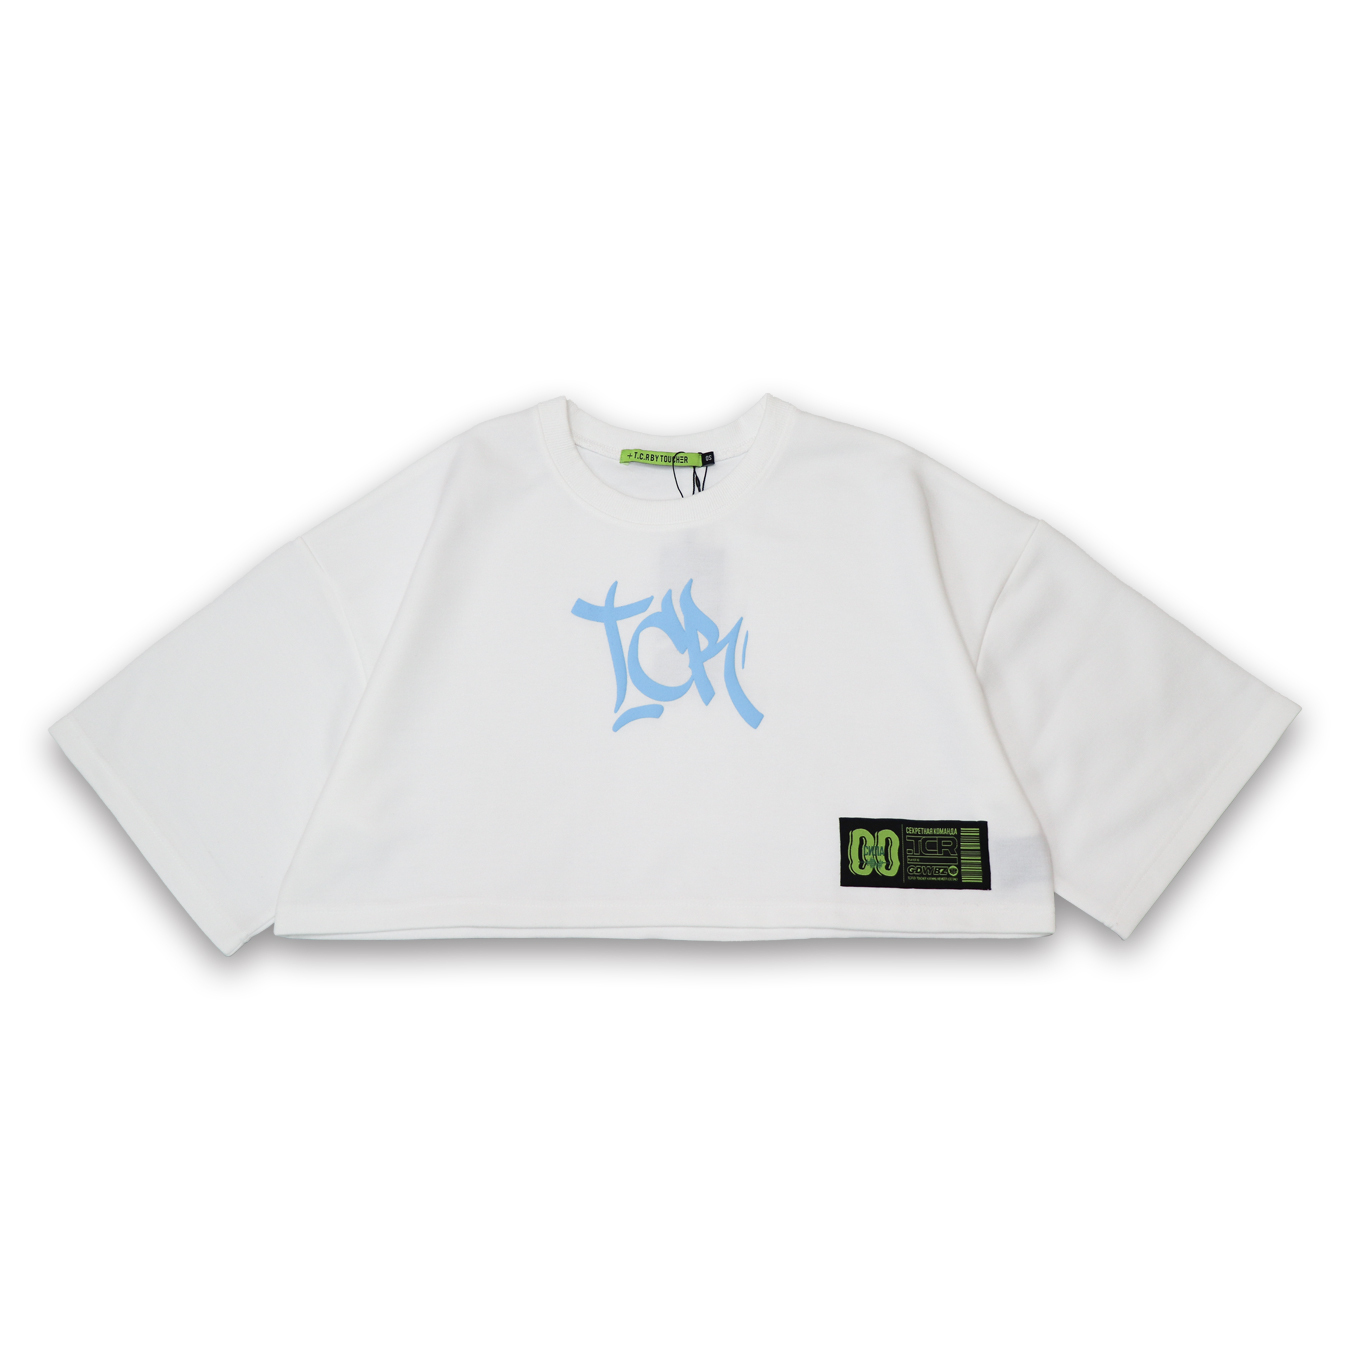 T.C.R FOAM LOGO  SHORT LENGTH TEE - WHITE